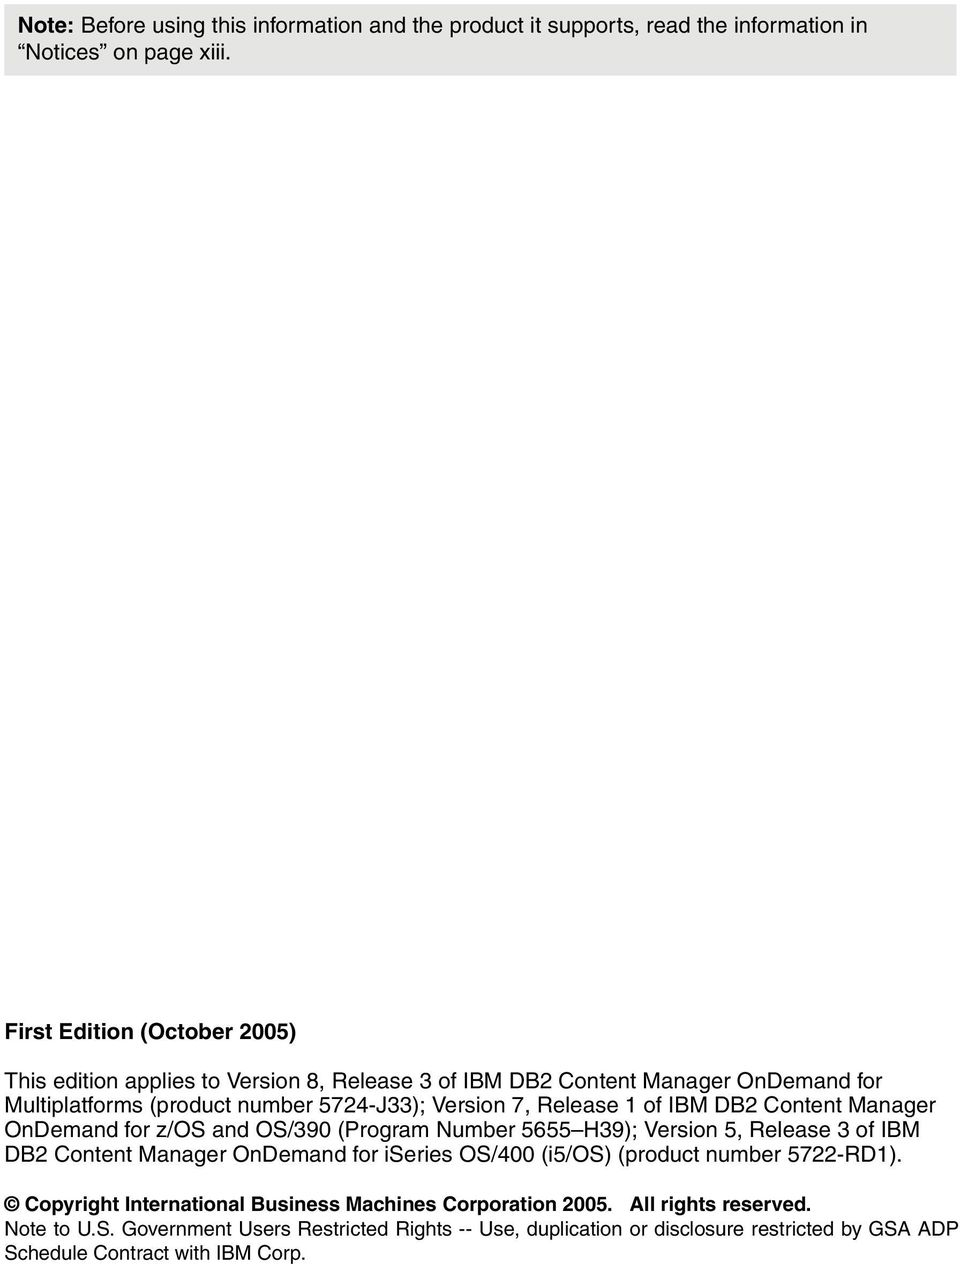 Content Manager Ondemand Backup Recovery And High Availability Pdf